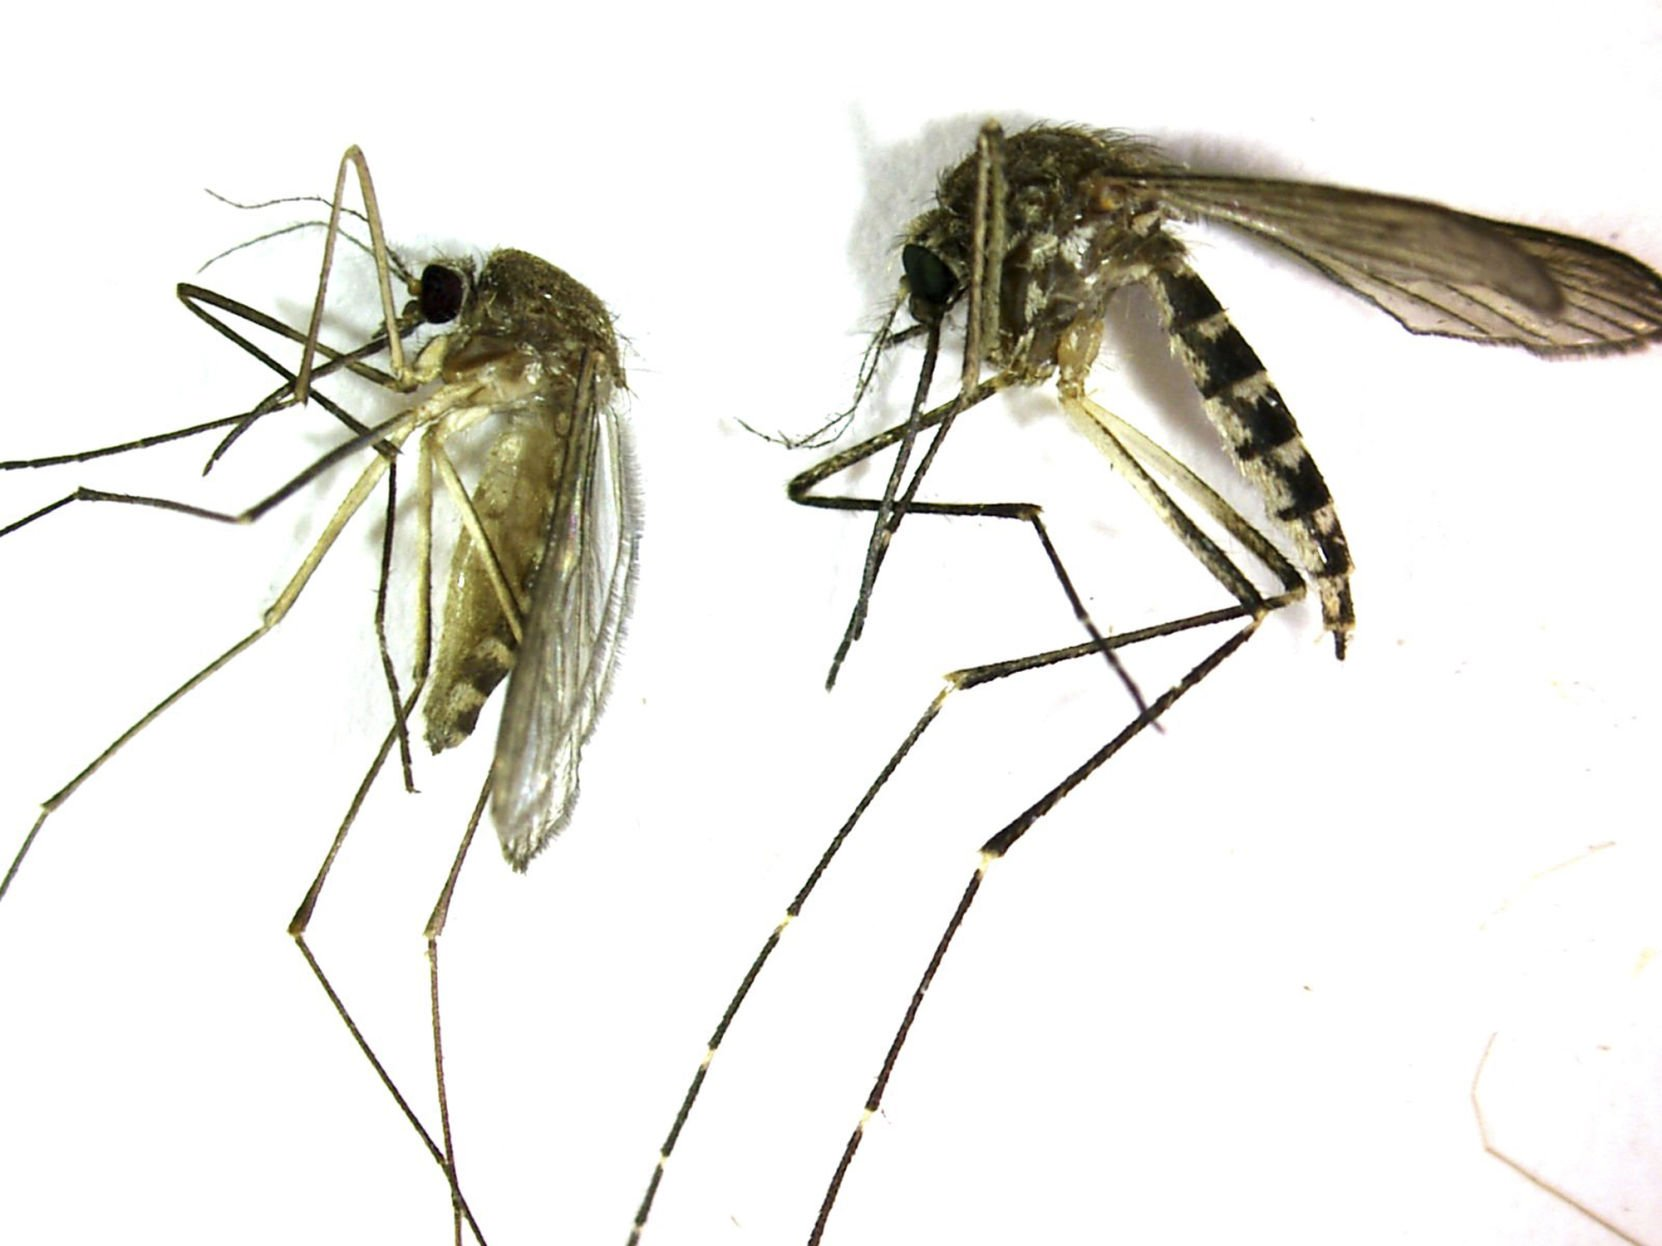 Case of West Nile virus confirmed in Rock Hill